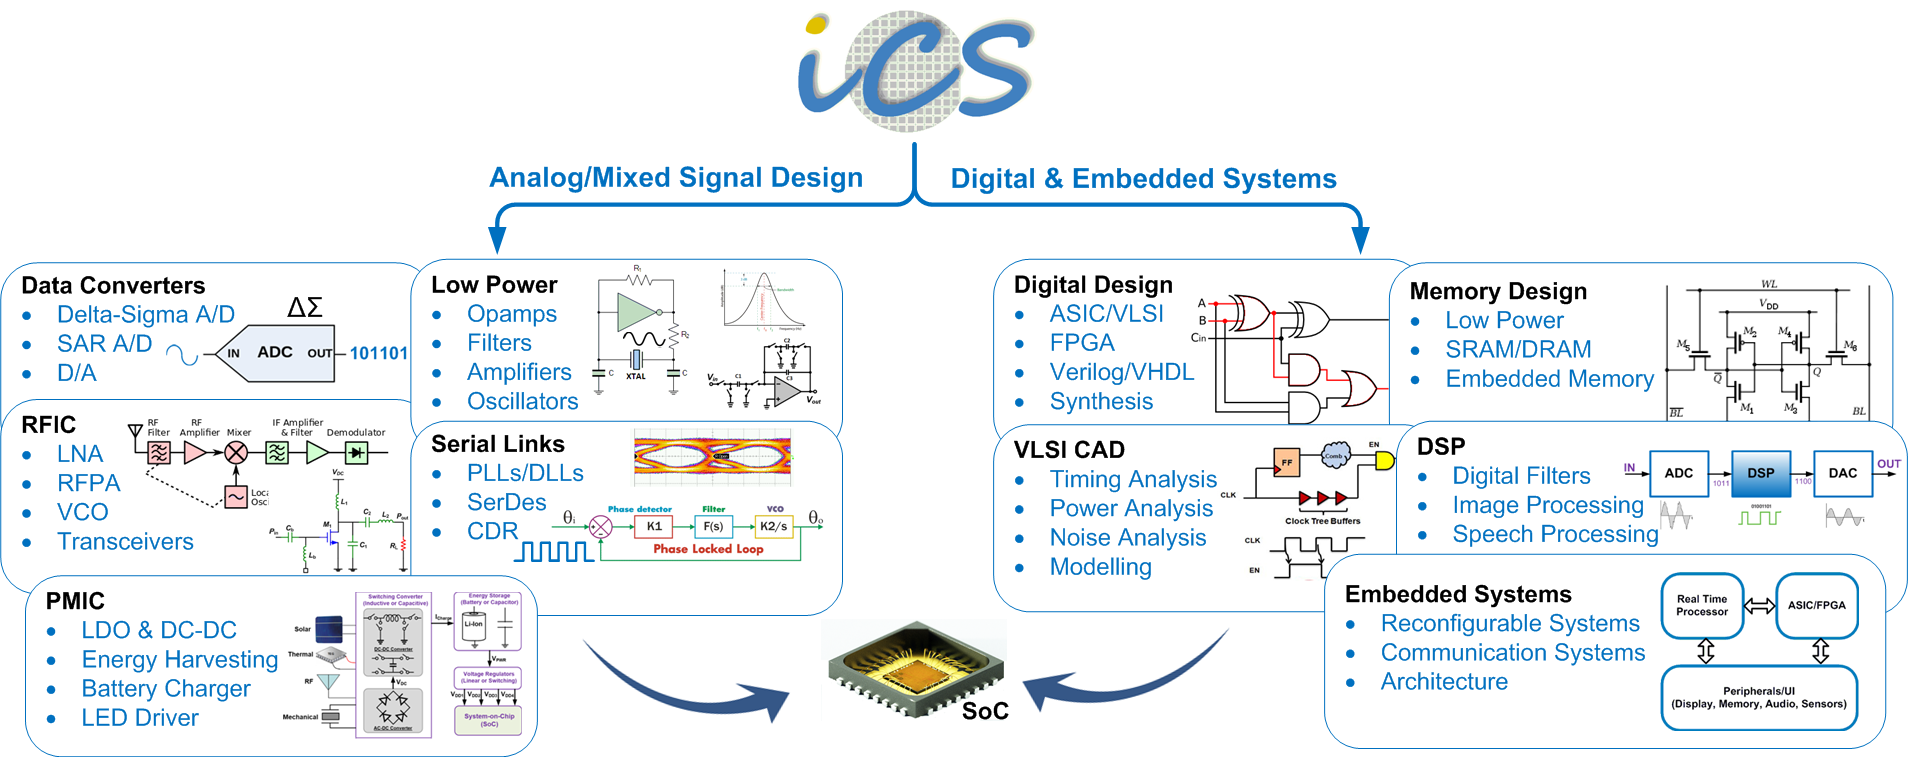 Departments Research Programme Iit Madras Msc In Analogue And Digital Integrated Circuit Design Rf Mixed Signal Ic Systems Including Architectures For Image Processing Vision Cad Analog Circuits